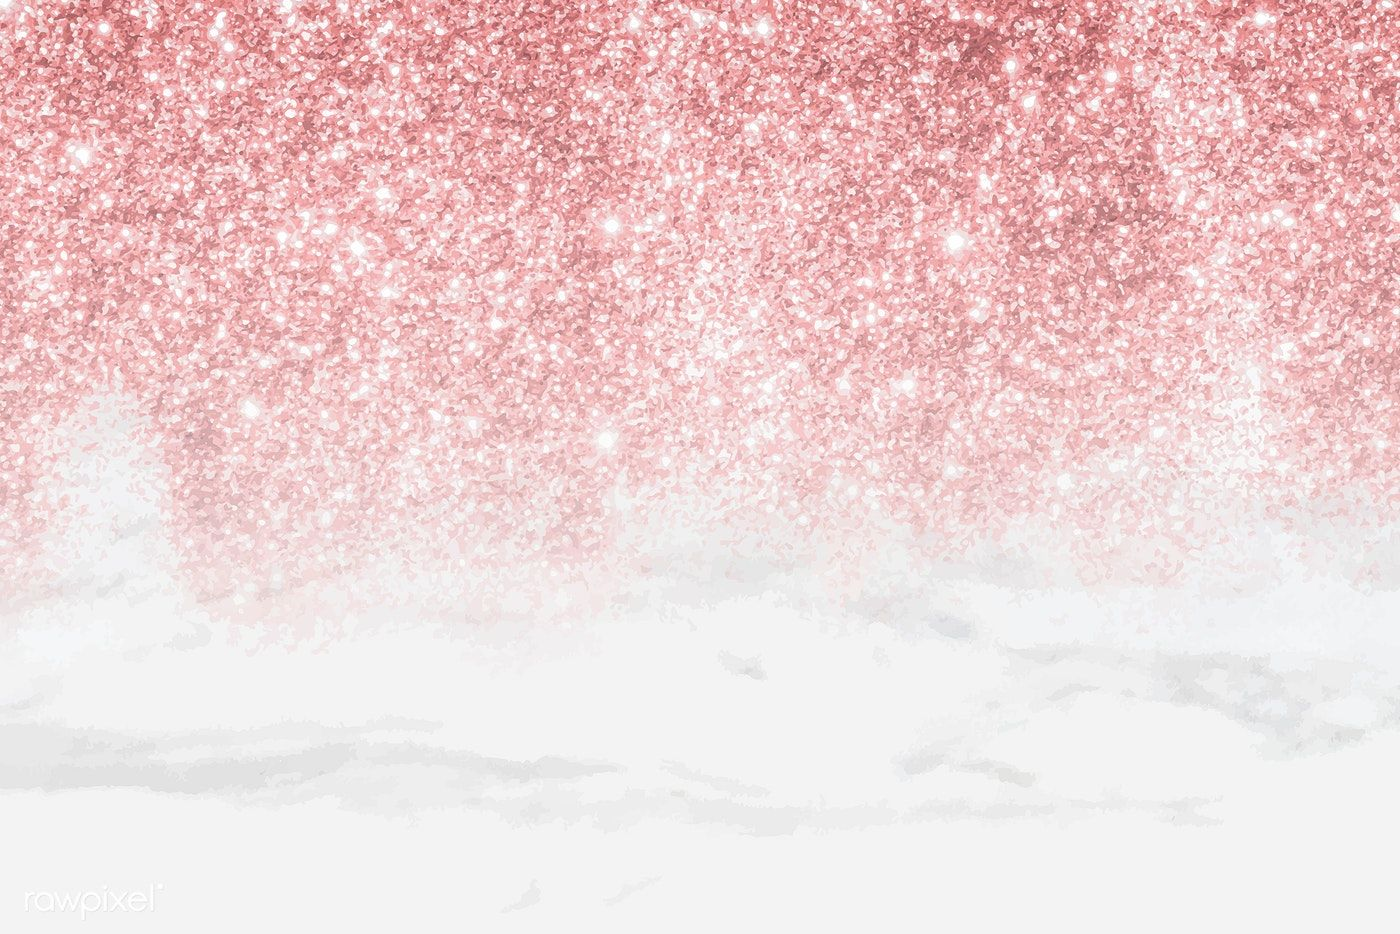 Download Premium Vector Of Pink Glittery Pattern On White Marble Pink Glitter Background Pink Glitter Wallpaper White Marble Background